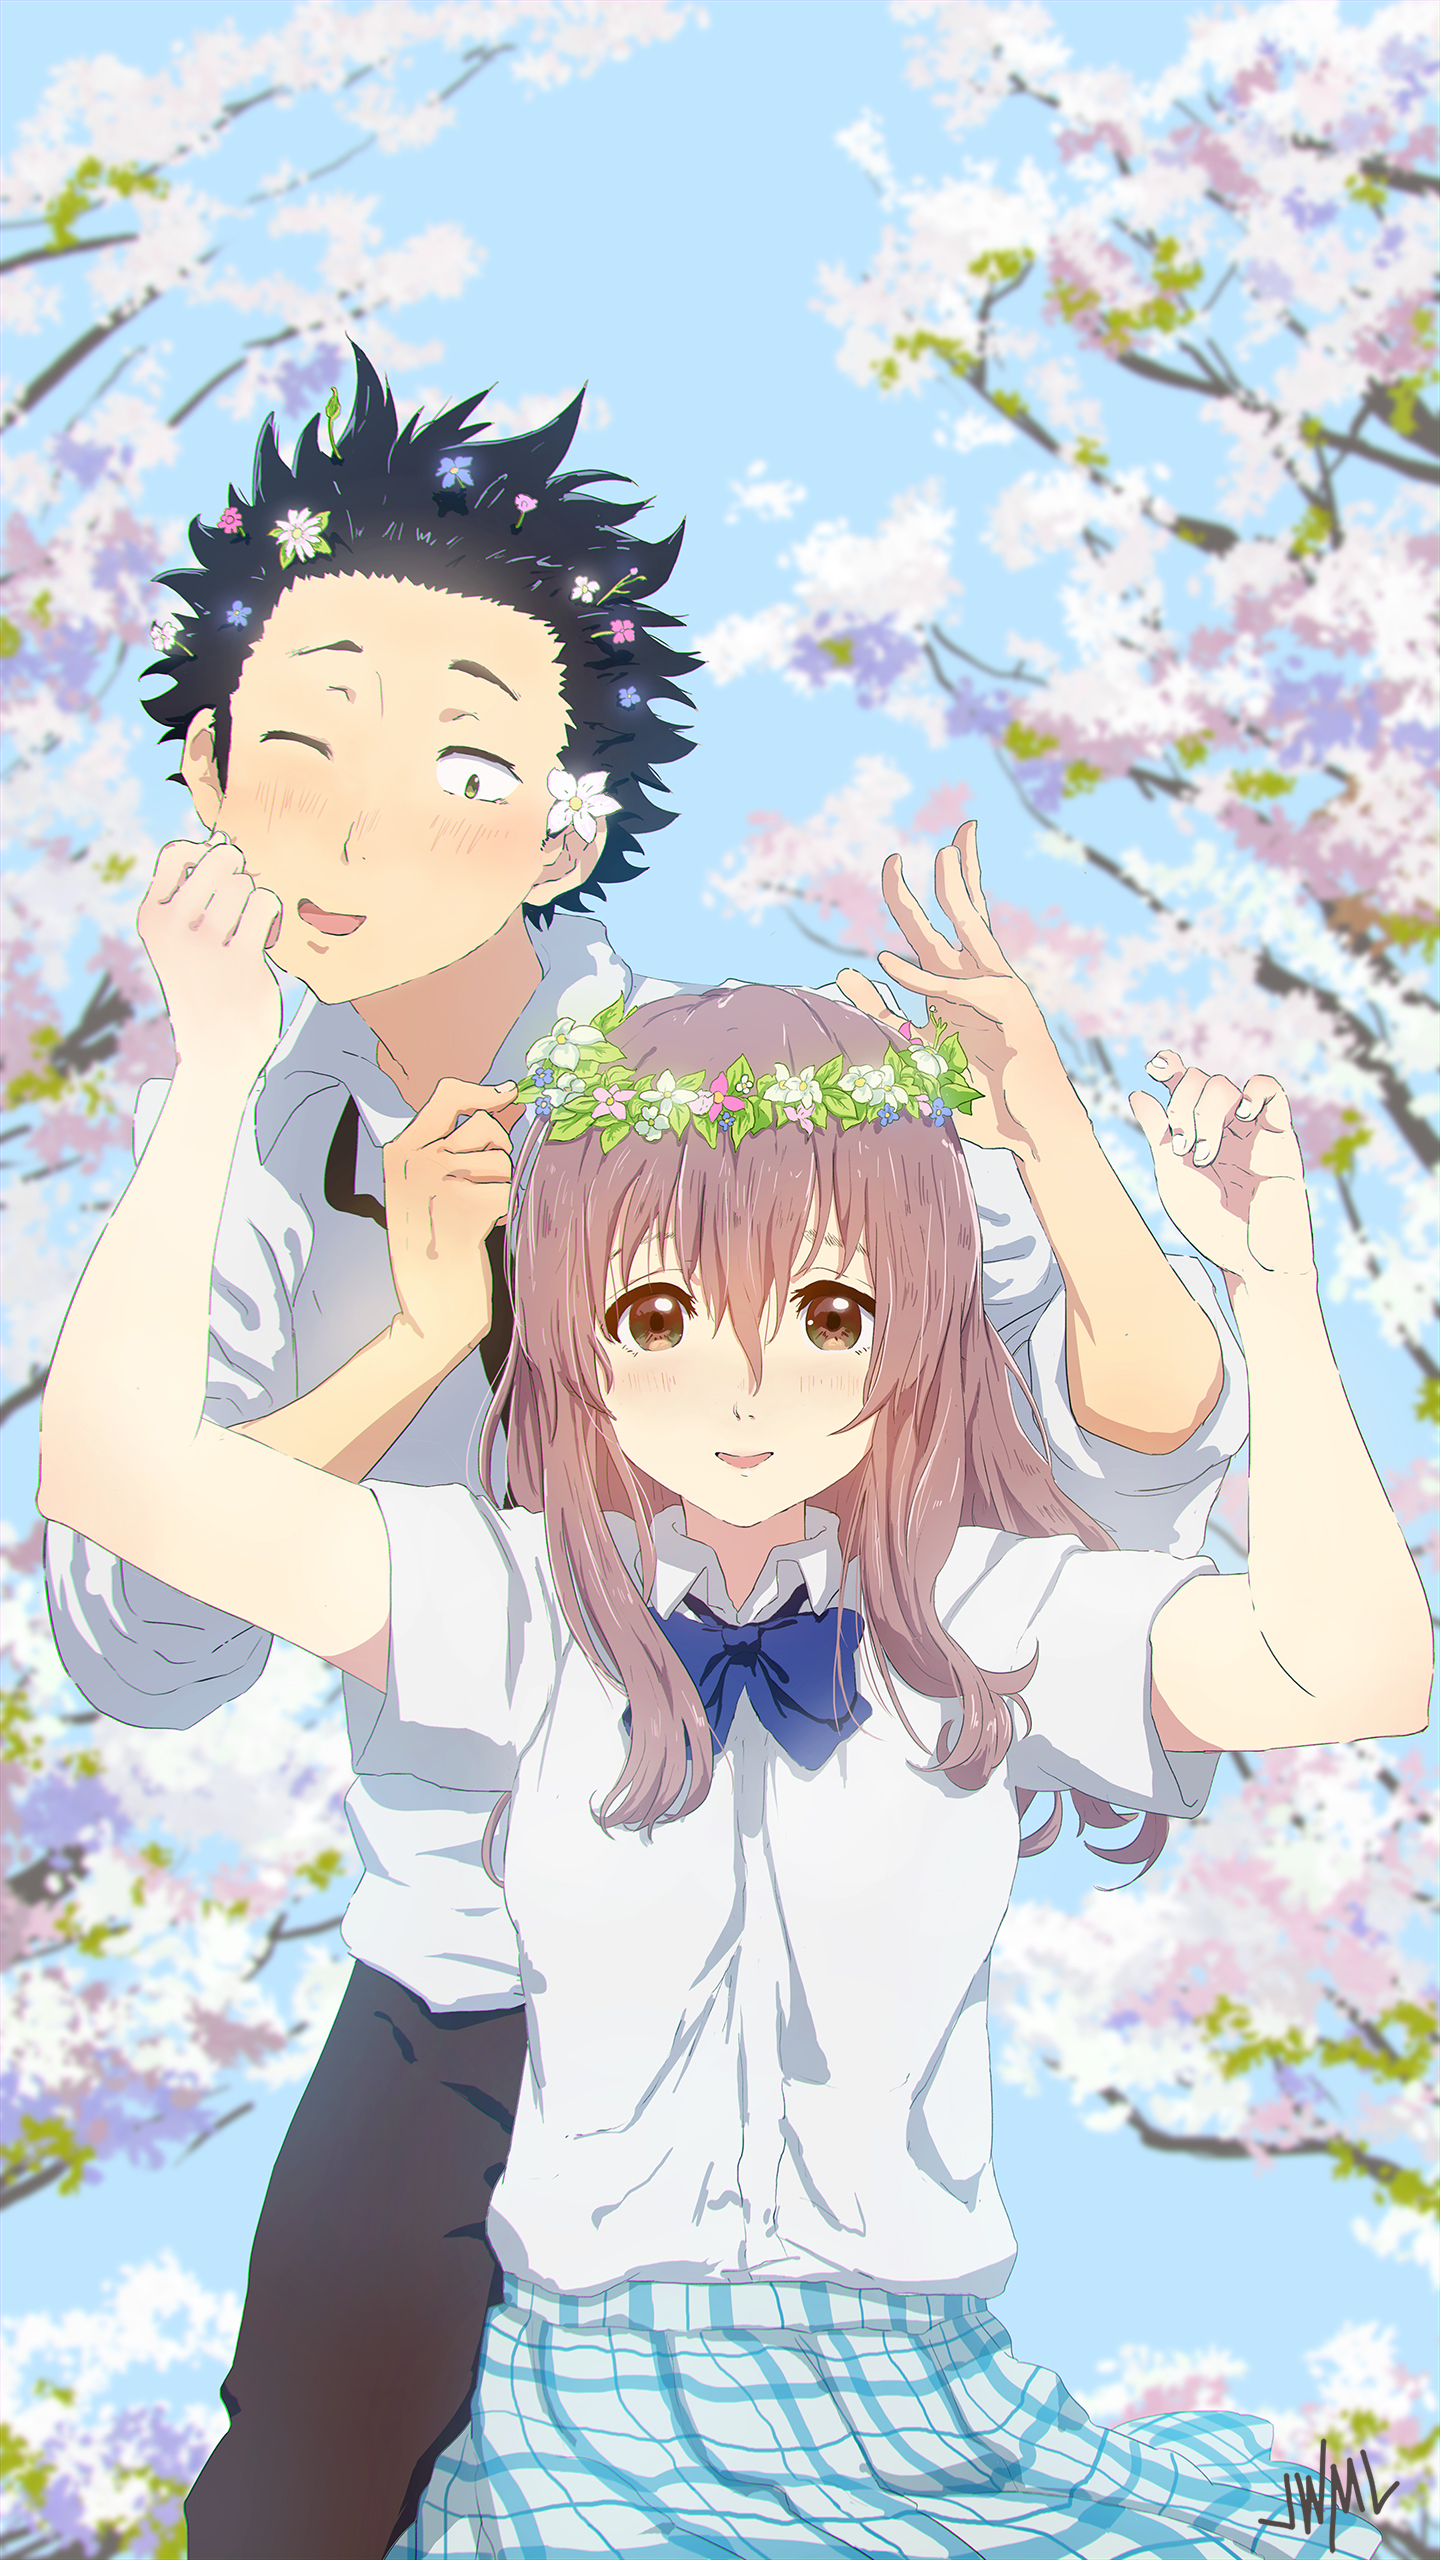 Koe no katachi image 2119458 zerochan anime image board for Koi no katachi